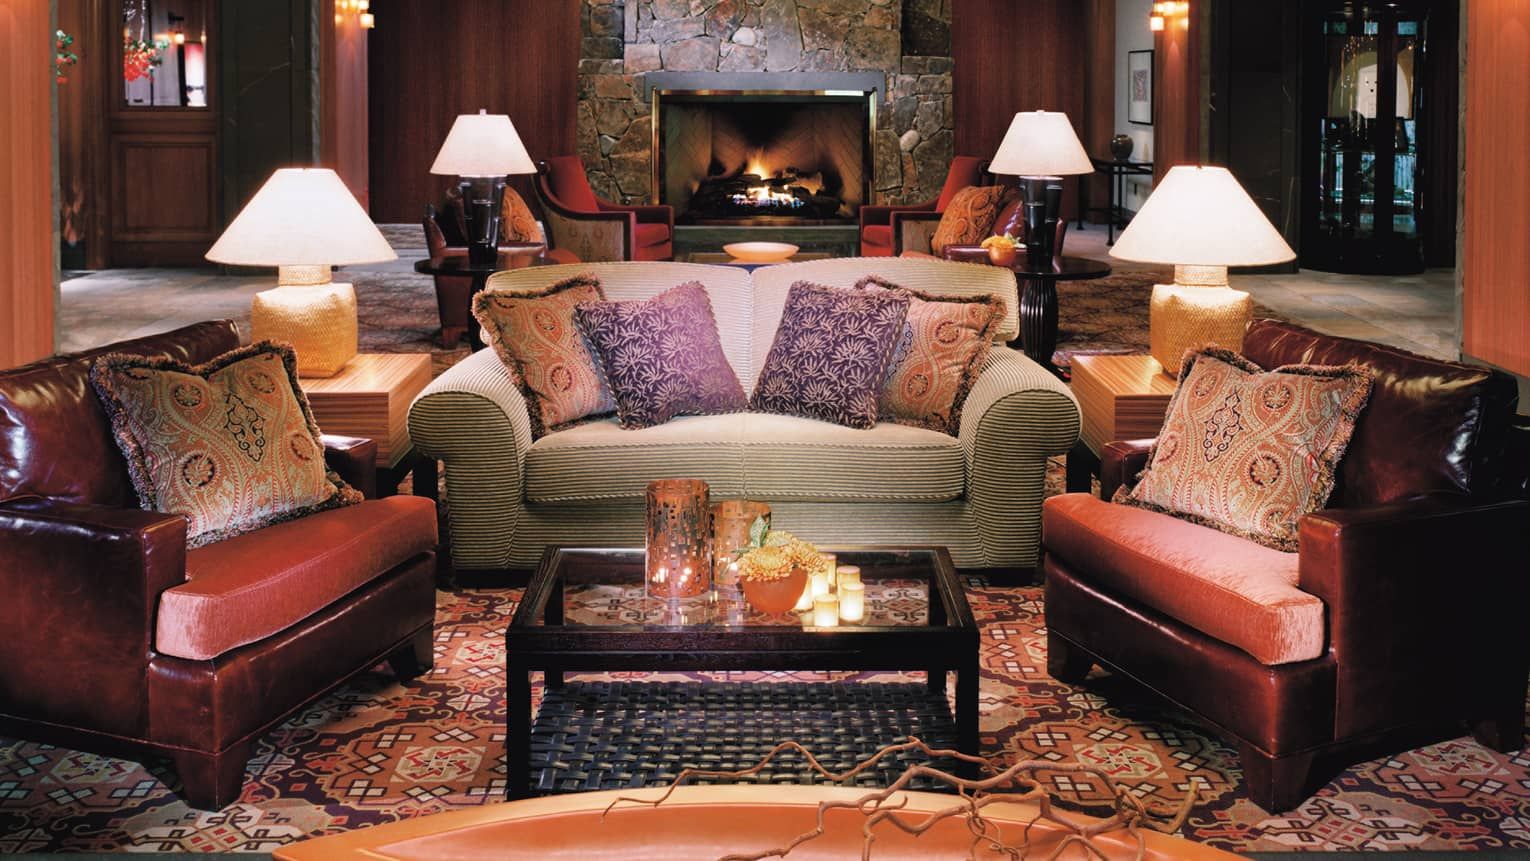 Lobby living area with plush sofa and armchairs, patterned pillows in front of large rustic  stone fireplace